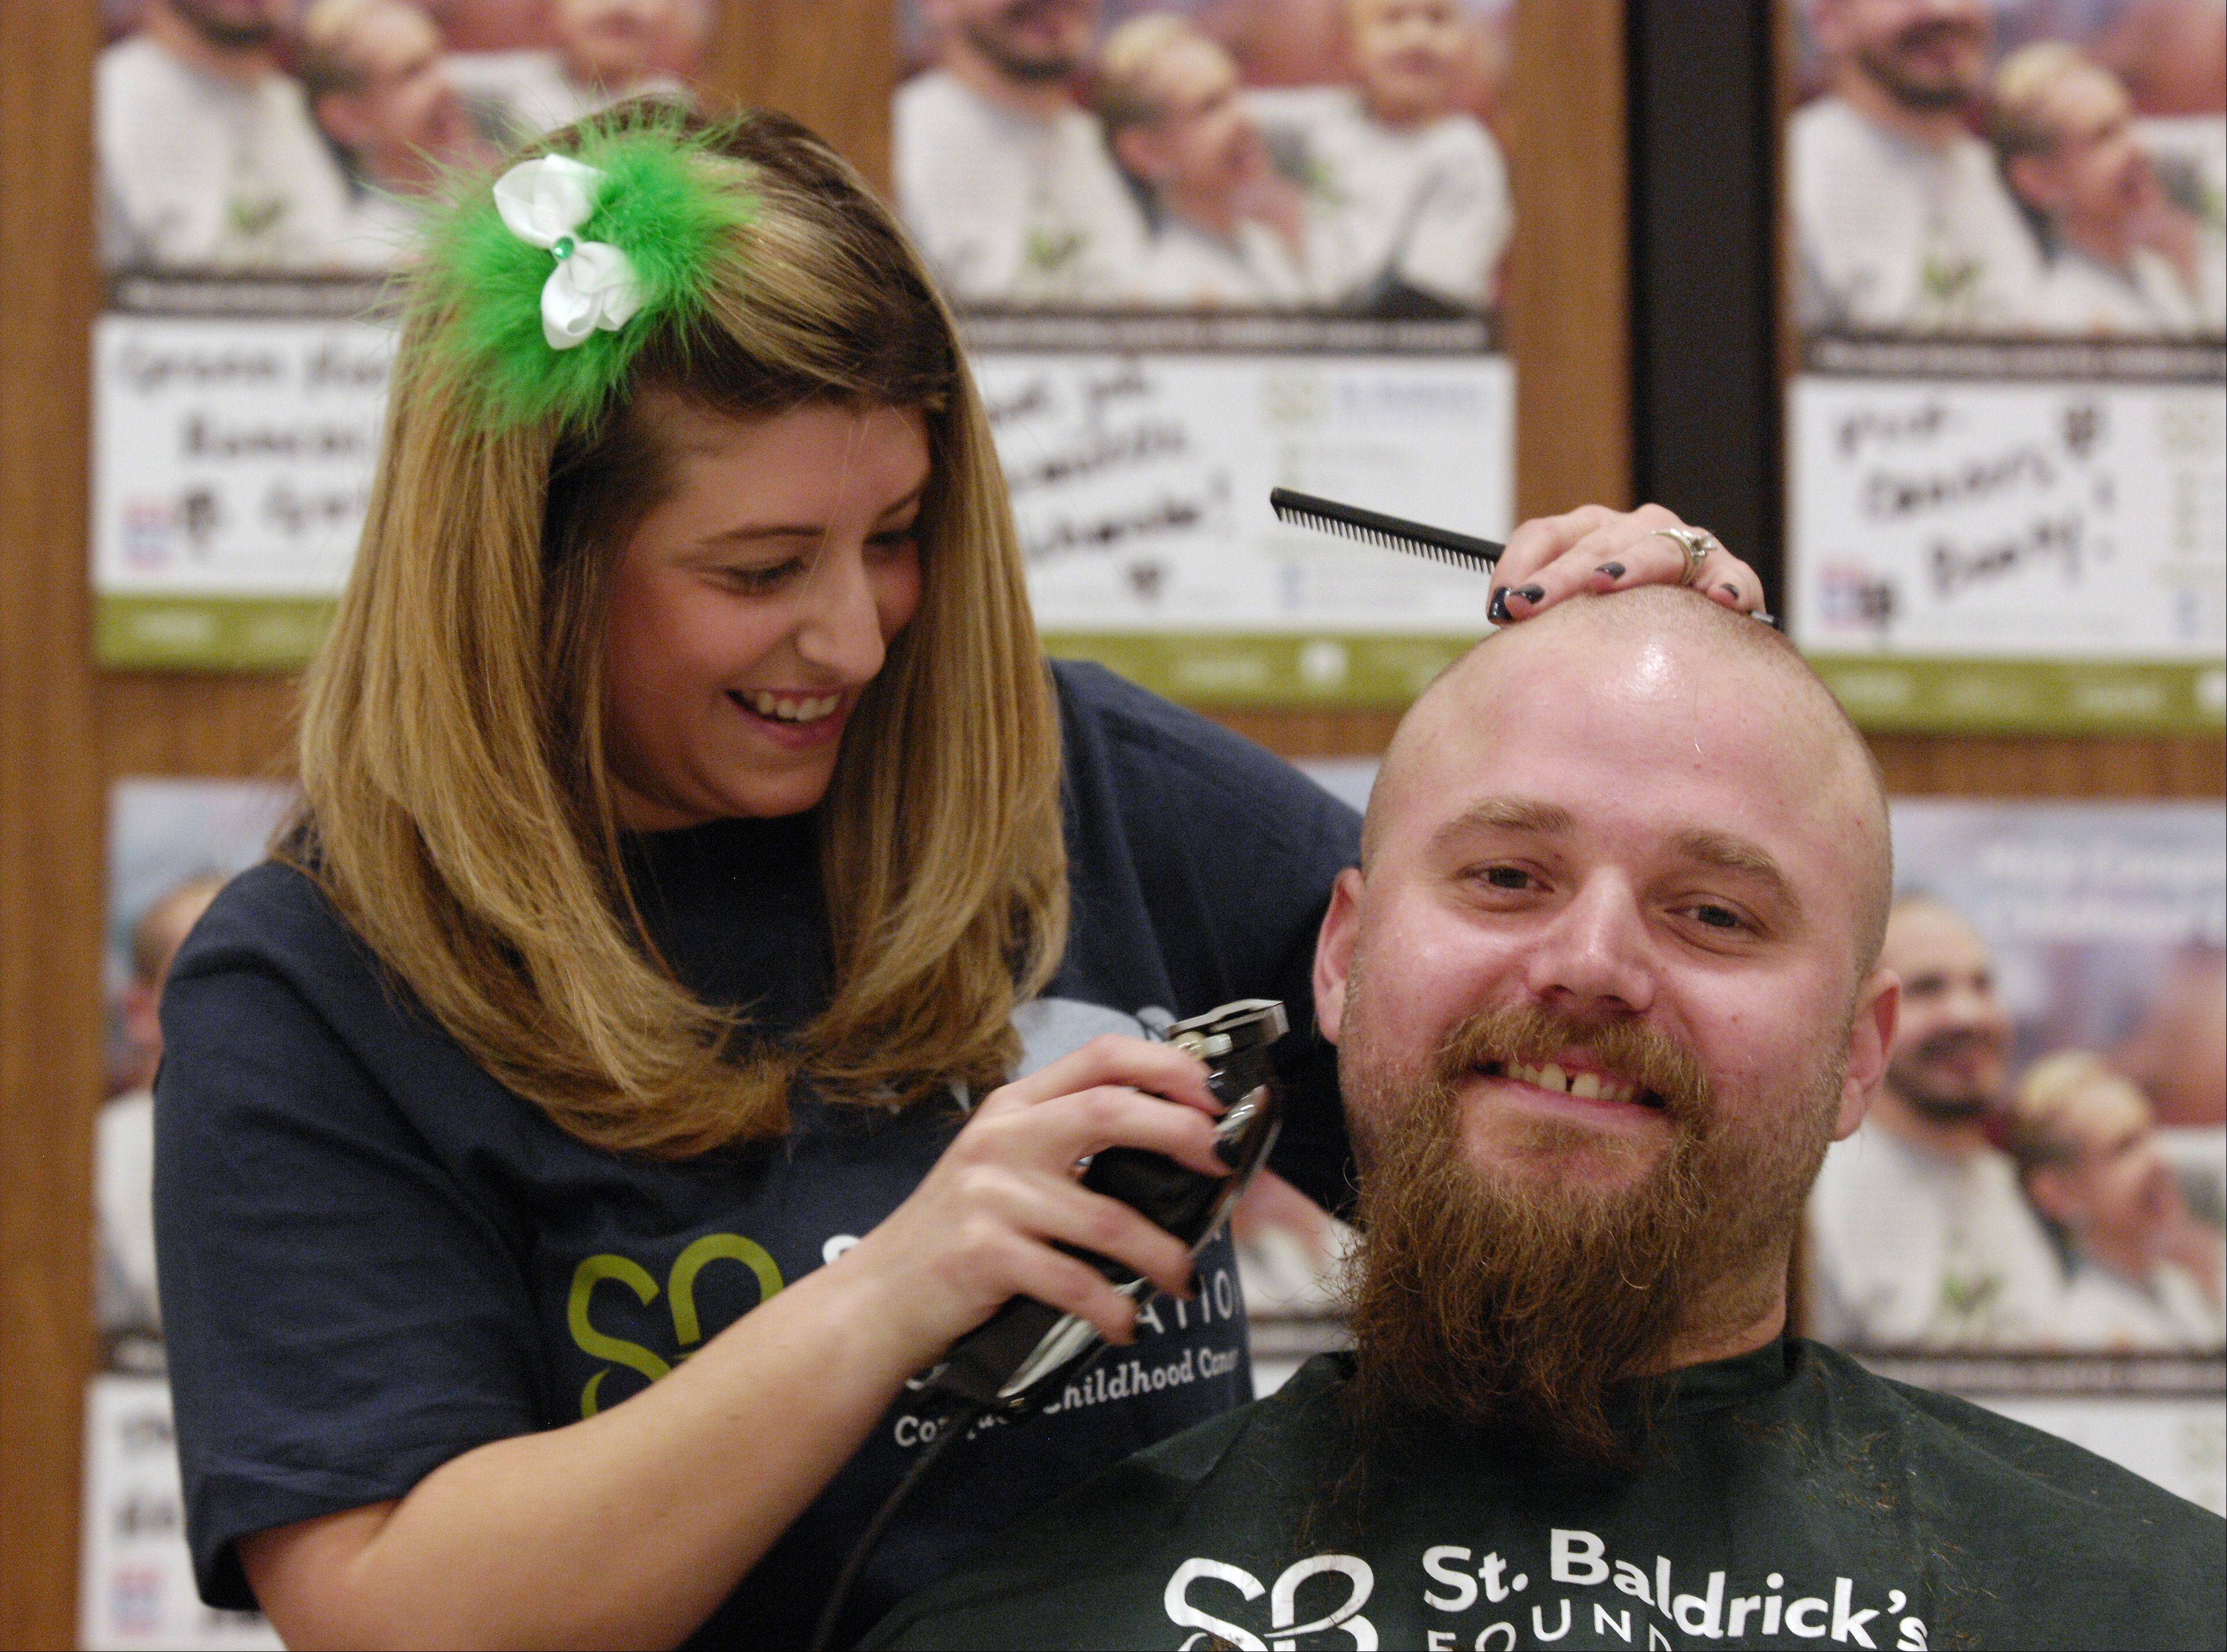 Gina Barzso of Bartlett shaves the head and bread of her husband Dan Barzso during the St. Baldrick�s Day shaving event at Evergreen Elementary School in honor of third grader Jack O�Donoghue, who�s cancer is now in remission. This is Barzso�s first time volunteering to shave heads for a St. Baldrick�s Day event.